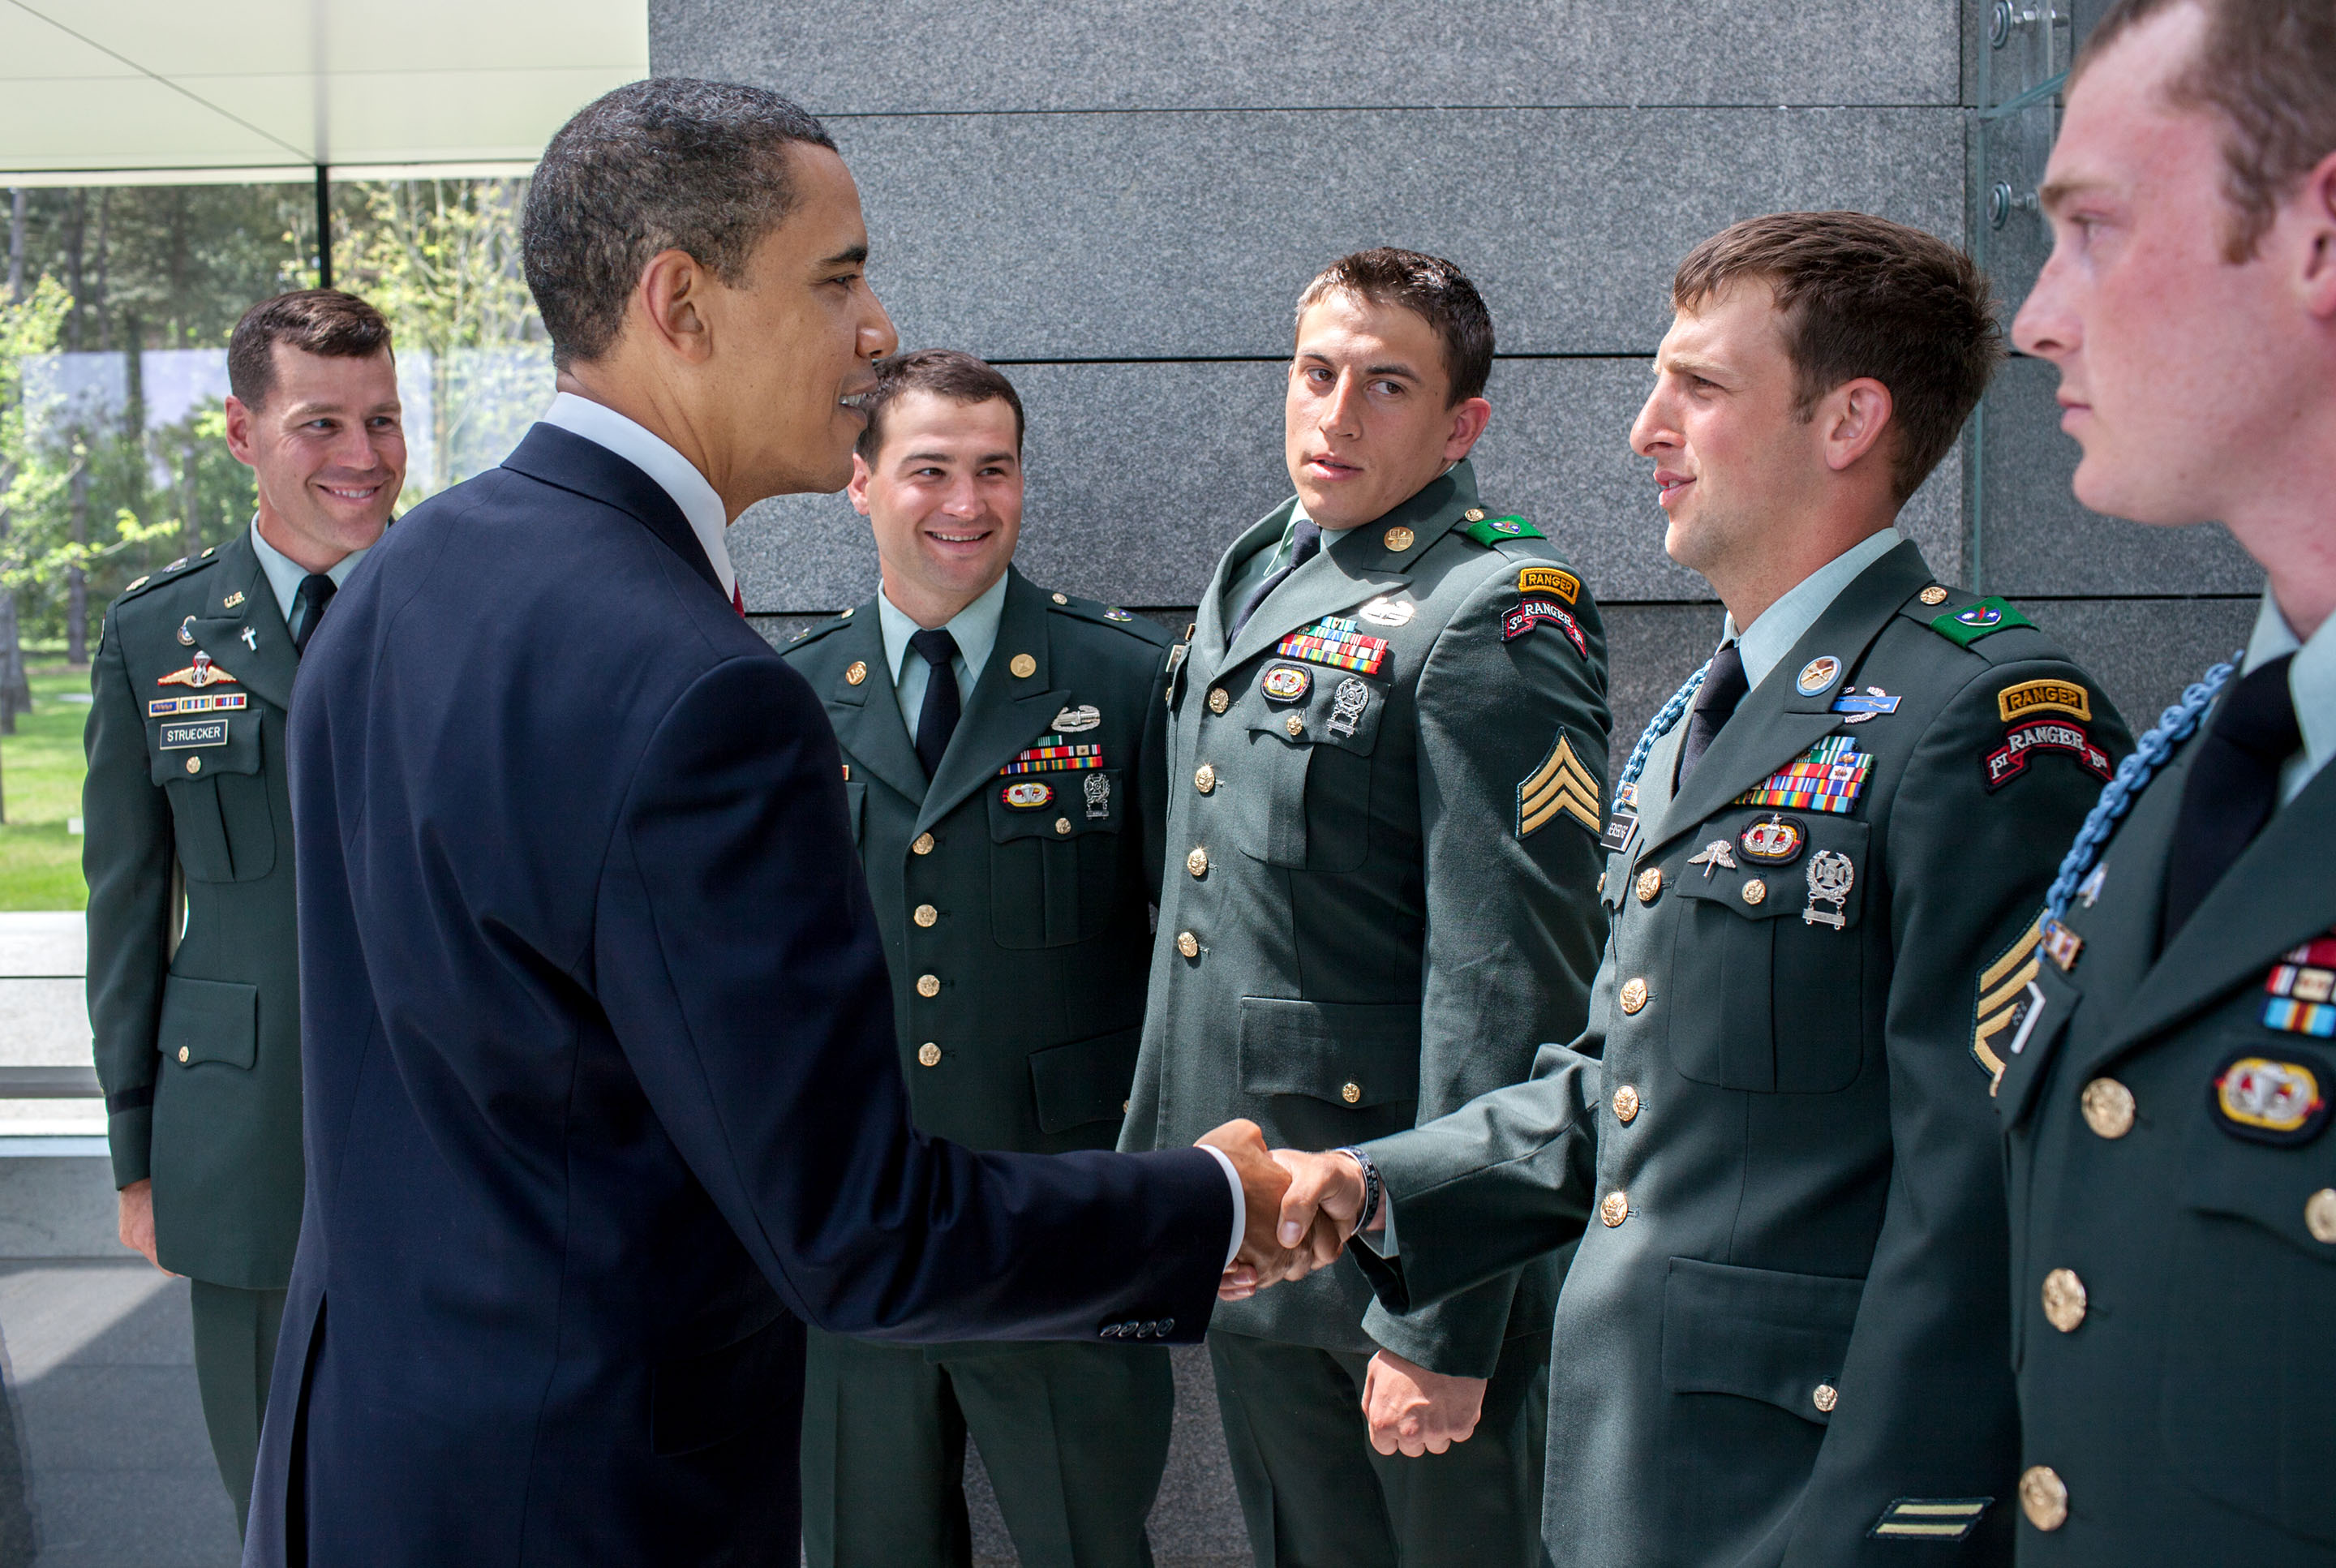 June 6, 2009: President Obama greets Cory Remsburg and other Army Rangers in Normandy. (Official White House Photo by Pete Souza)